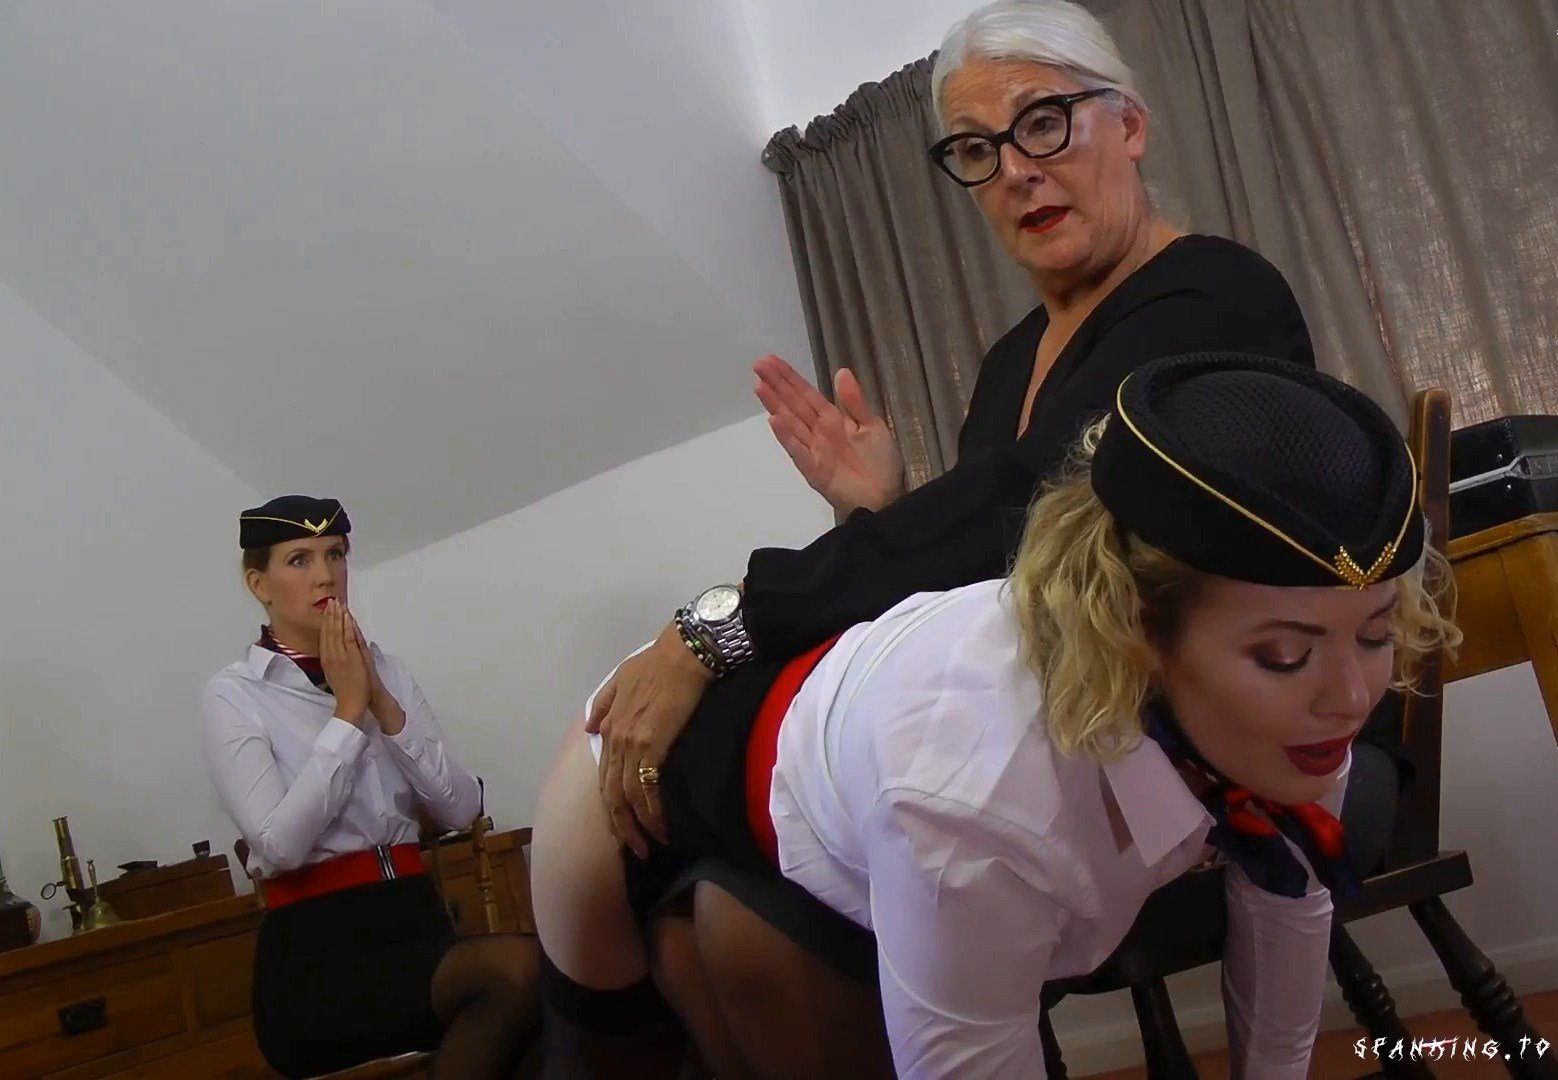 Disciplined by the Auditor (Part 1) - Aaaspanking [Triple A Spanking] - Full HD